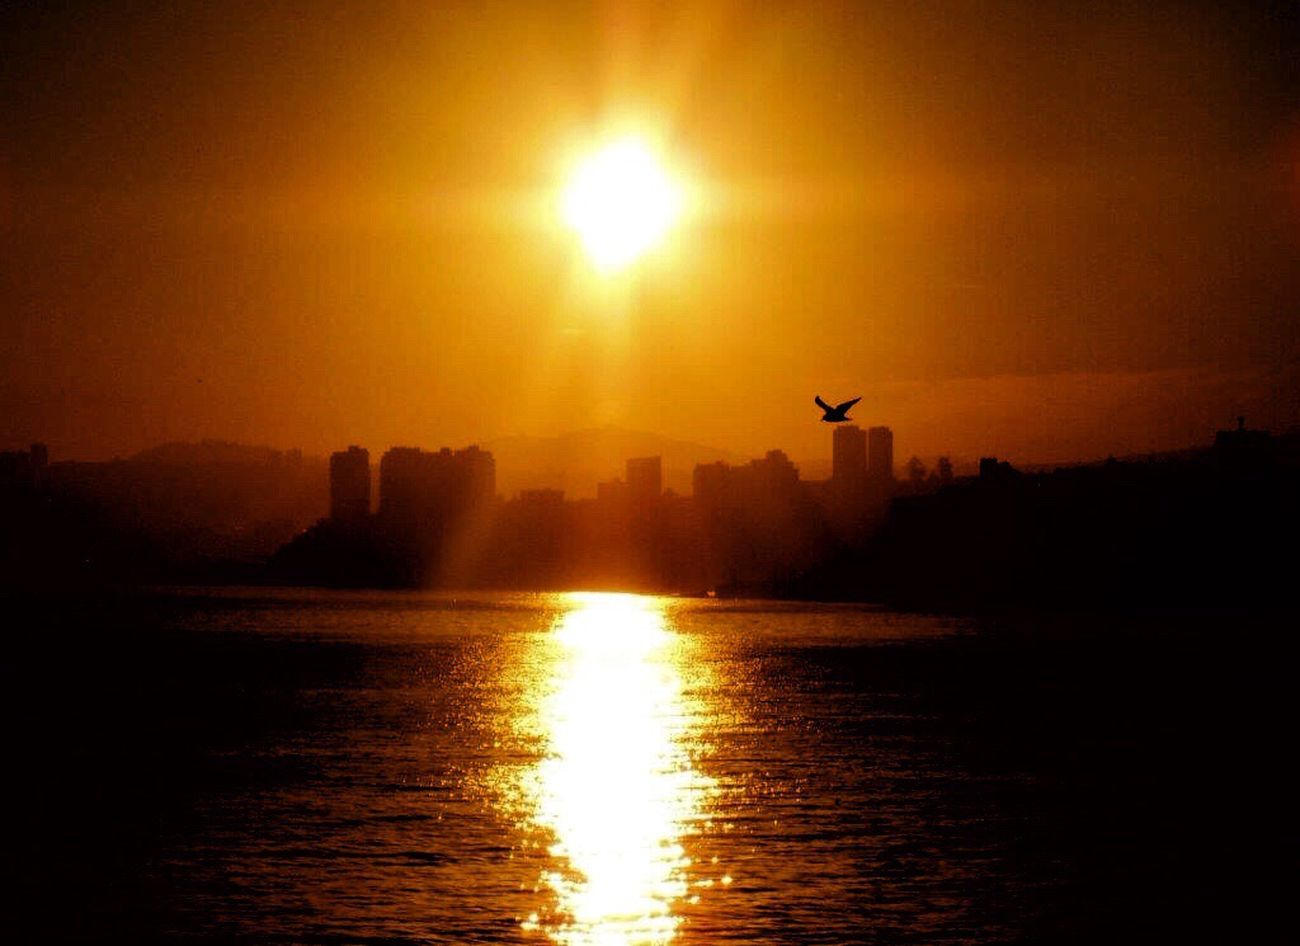 Morning Sunrise Sunrise Silhouette Sunrise_Collection Sunrise Reflection Orange Sunrise Sun Rays Sun ☀ Sun Reflection On Water Sun And Silhouettes Bird In Flight From My Lens Outdoors Beauty In Nature